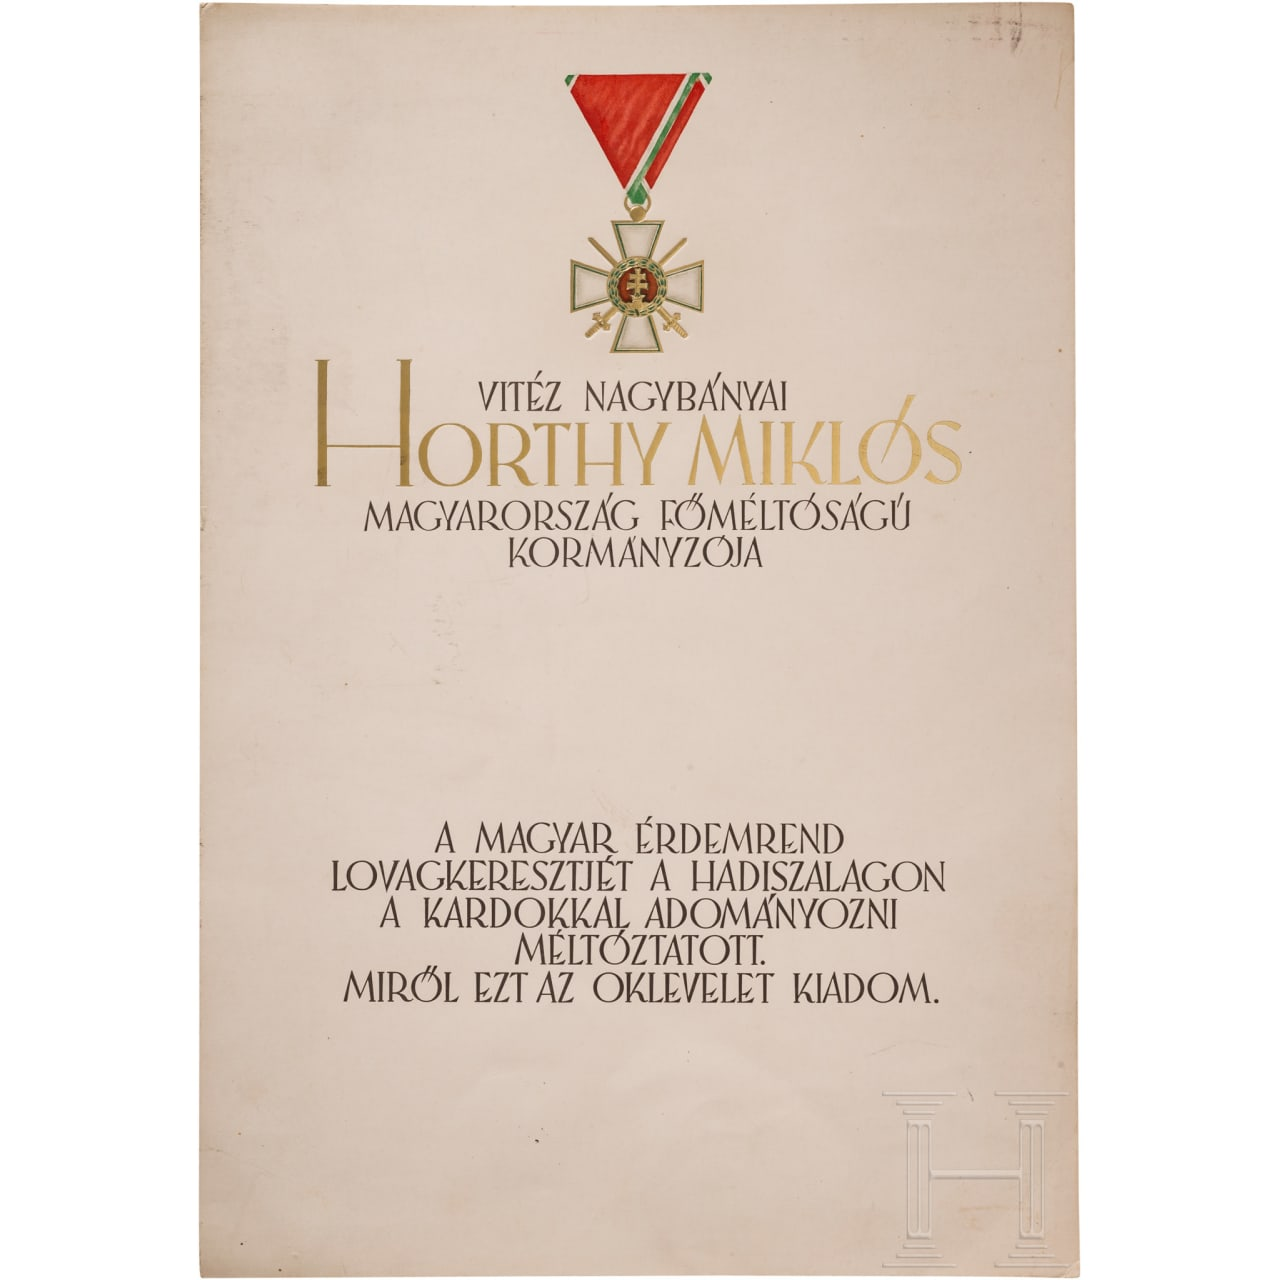 Three blank bestowal documents for the Order of Merit